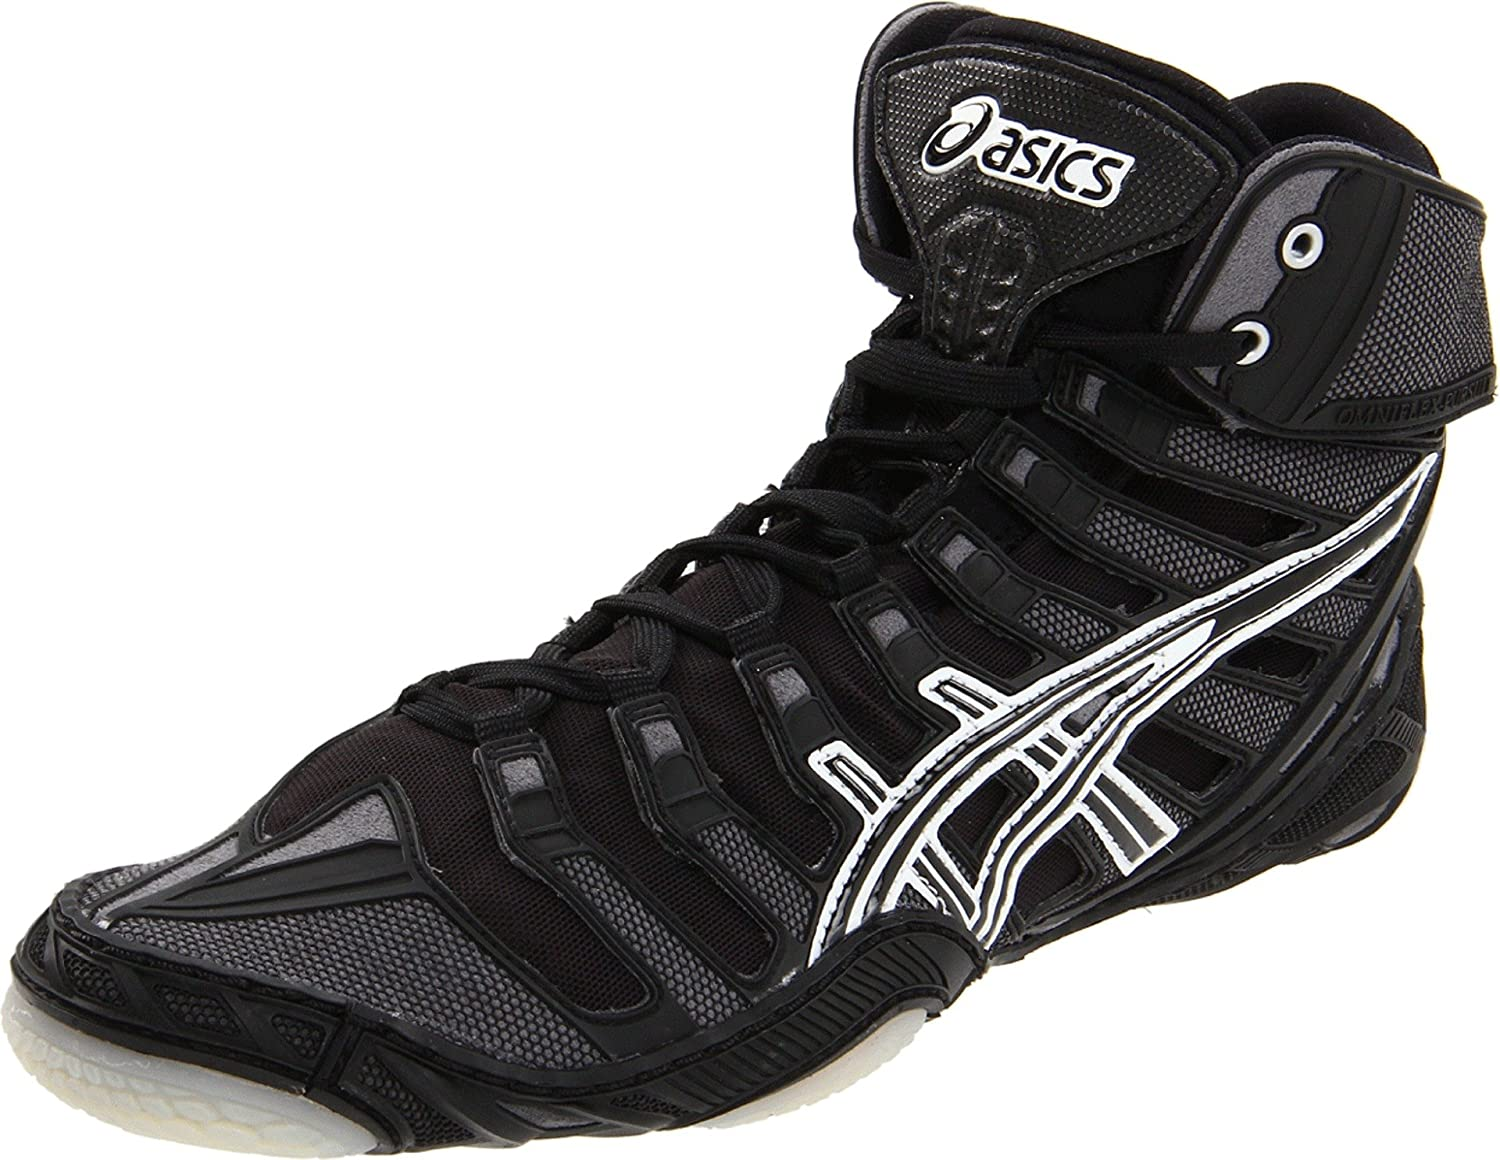 ASICS Omniflex Pursuit, White, 7.5 Mens Black/Silver/White 7 M US ASICS Footwear